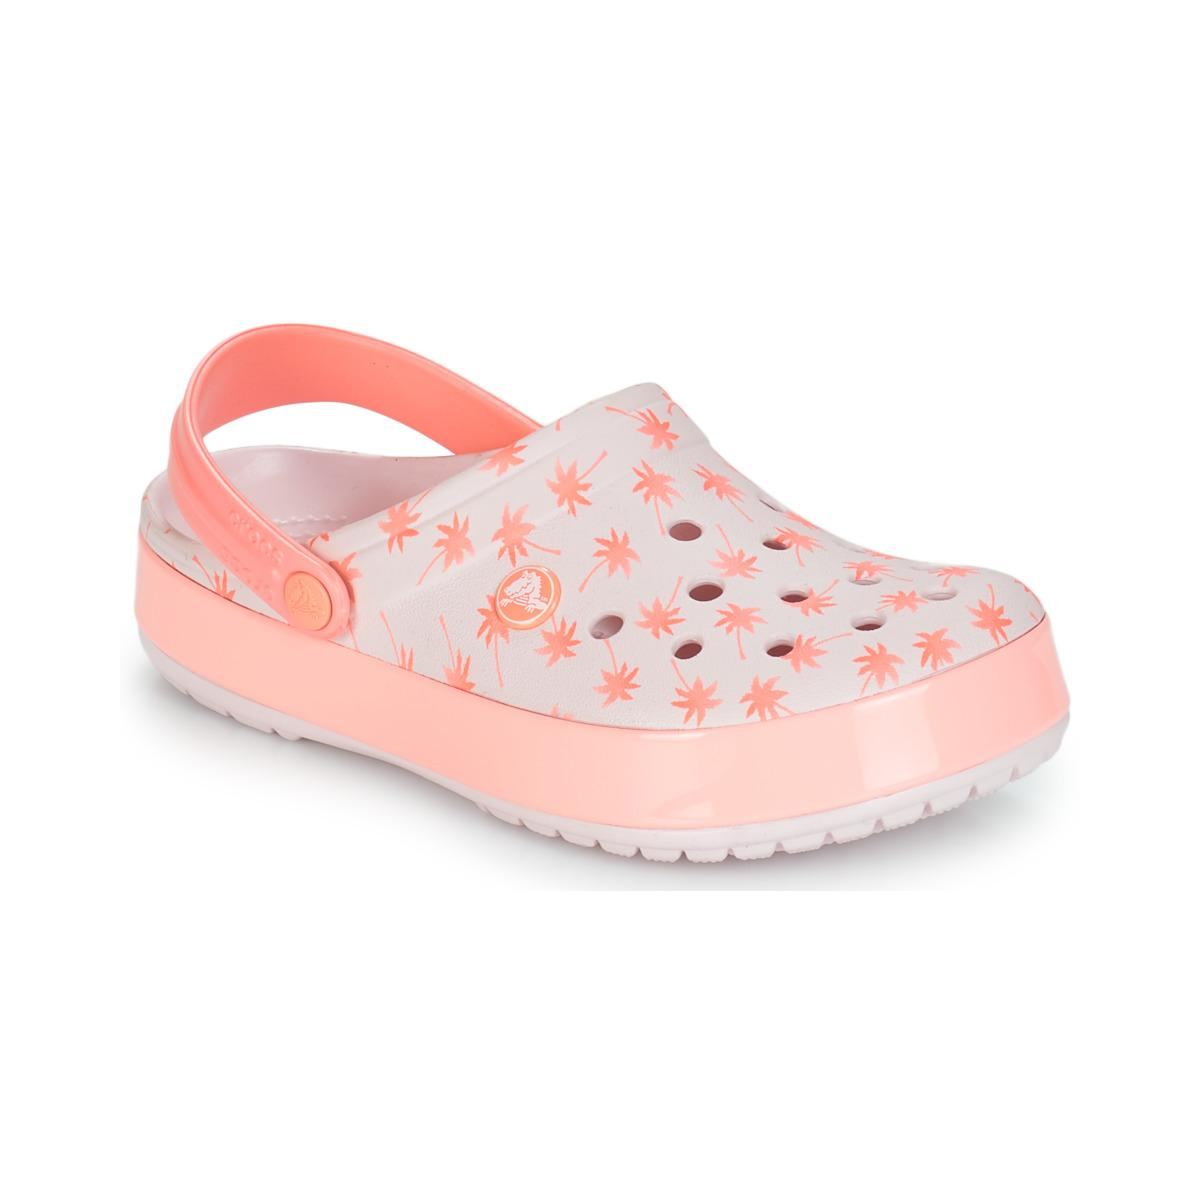 e6fc4dcea92a Crocs™ Crocband Seasonal Graphic Clog in Pink - Lyst